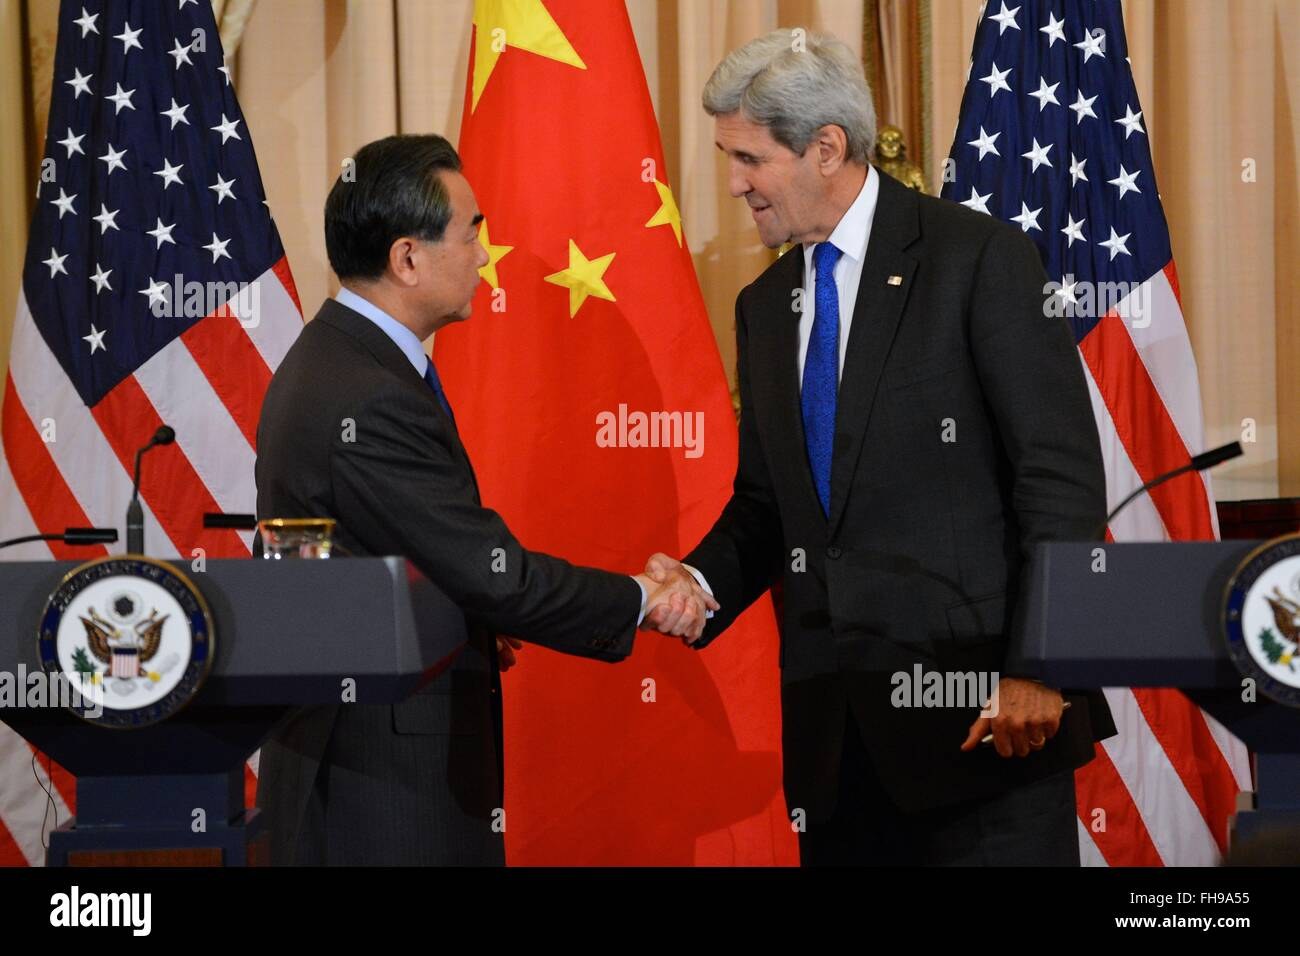 U.S. Secretary of State John Kerry shakes hands with Chinese Foreign Minister Wang Yi after a joint news conference - Stock Image